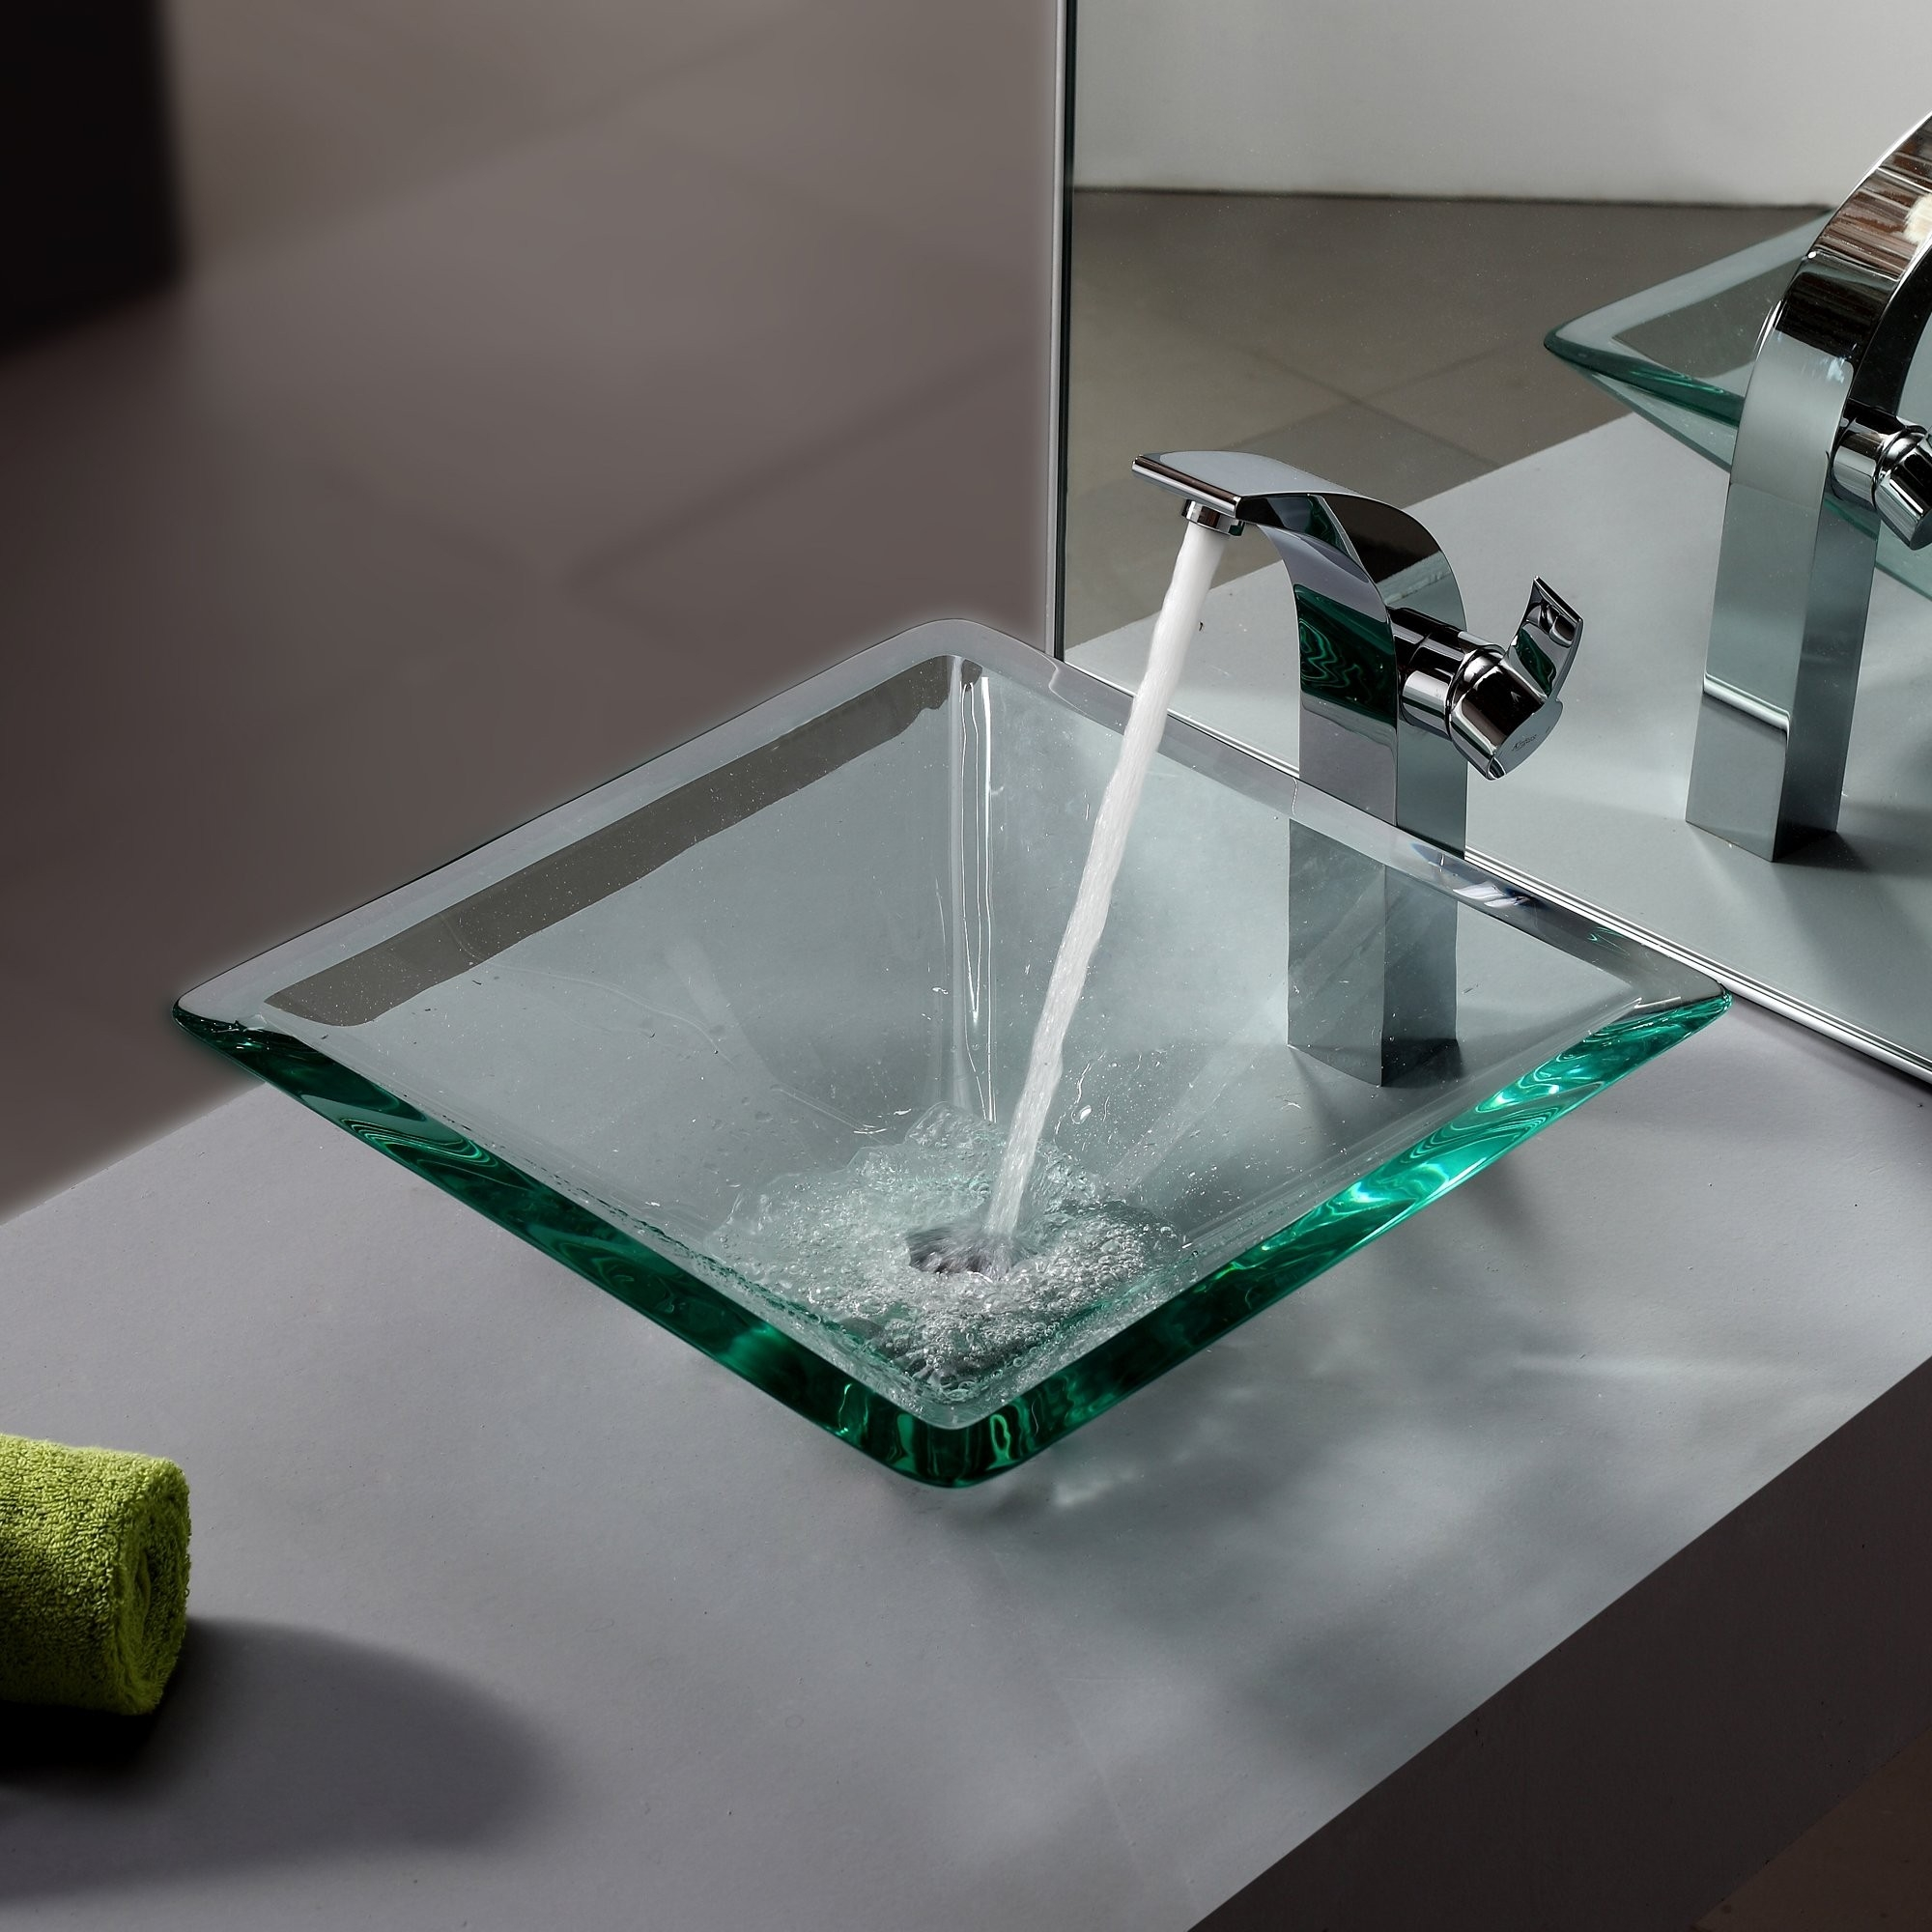 Ideas, square vessel sinks with faucets square vessel sinks with faucets bathroom glass vessel sink and faucet combination kraususa 2000 x 2000 1  .